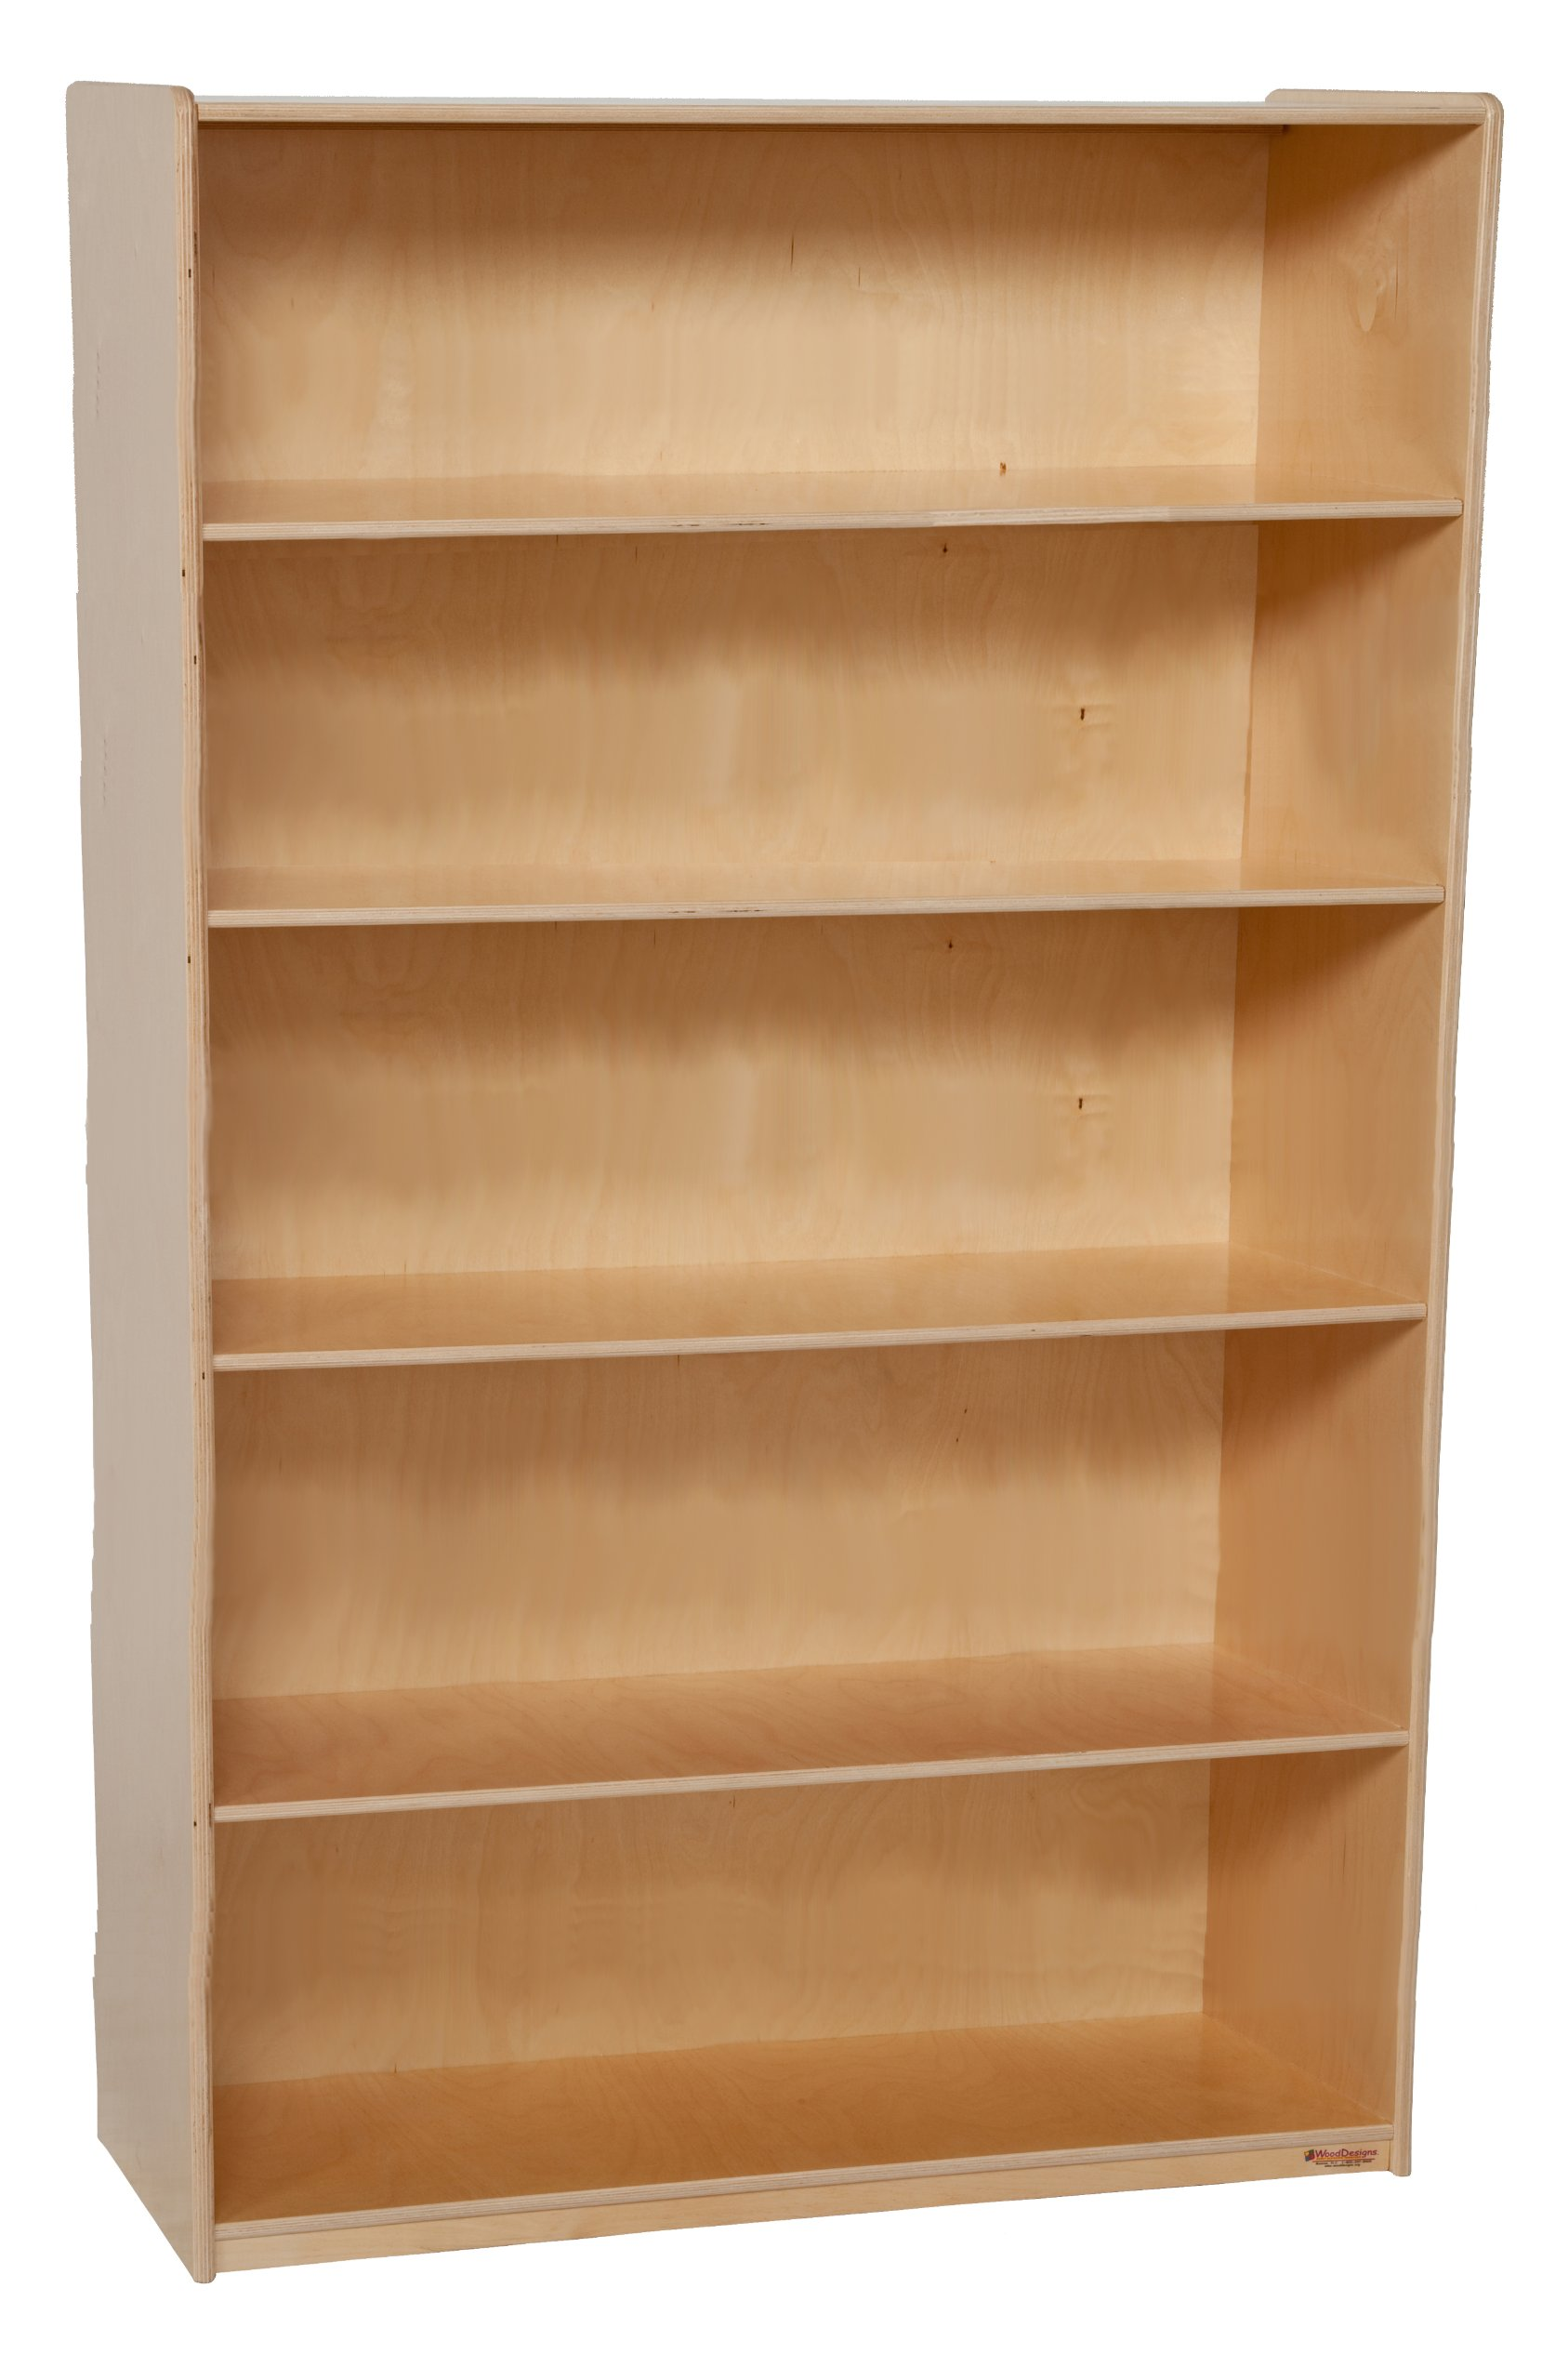 Wood Designs WD13260 X-Deep Bookshelf, 60 x 36 x 18'' (H x W x D)